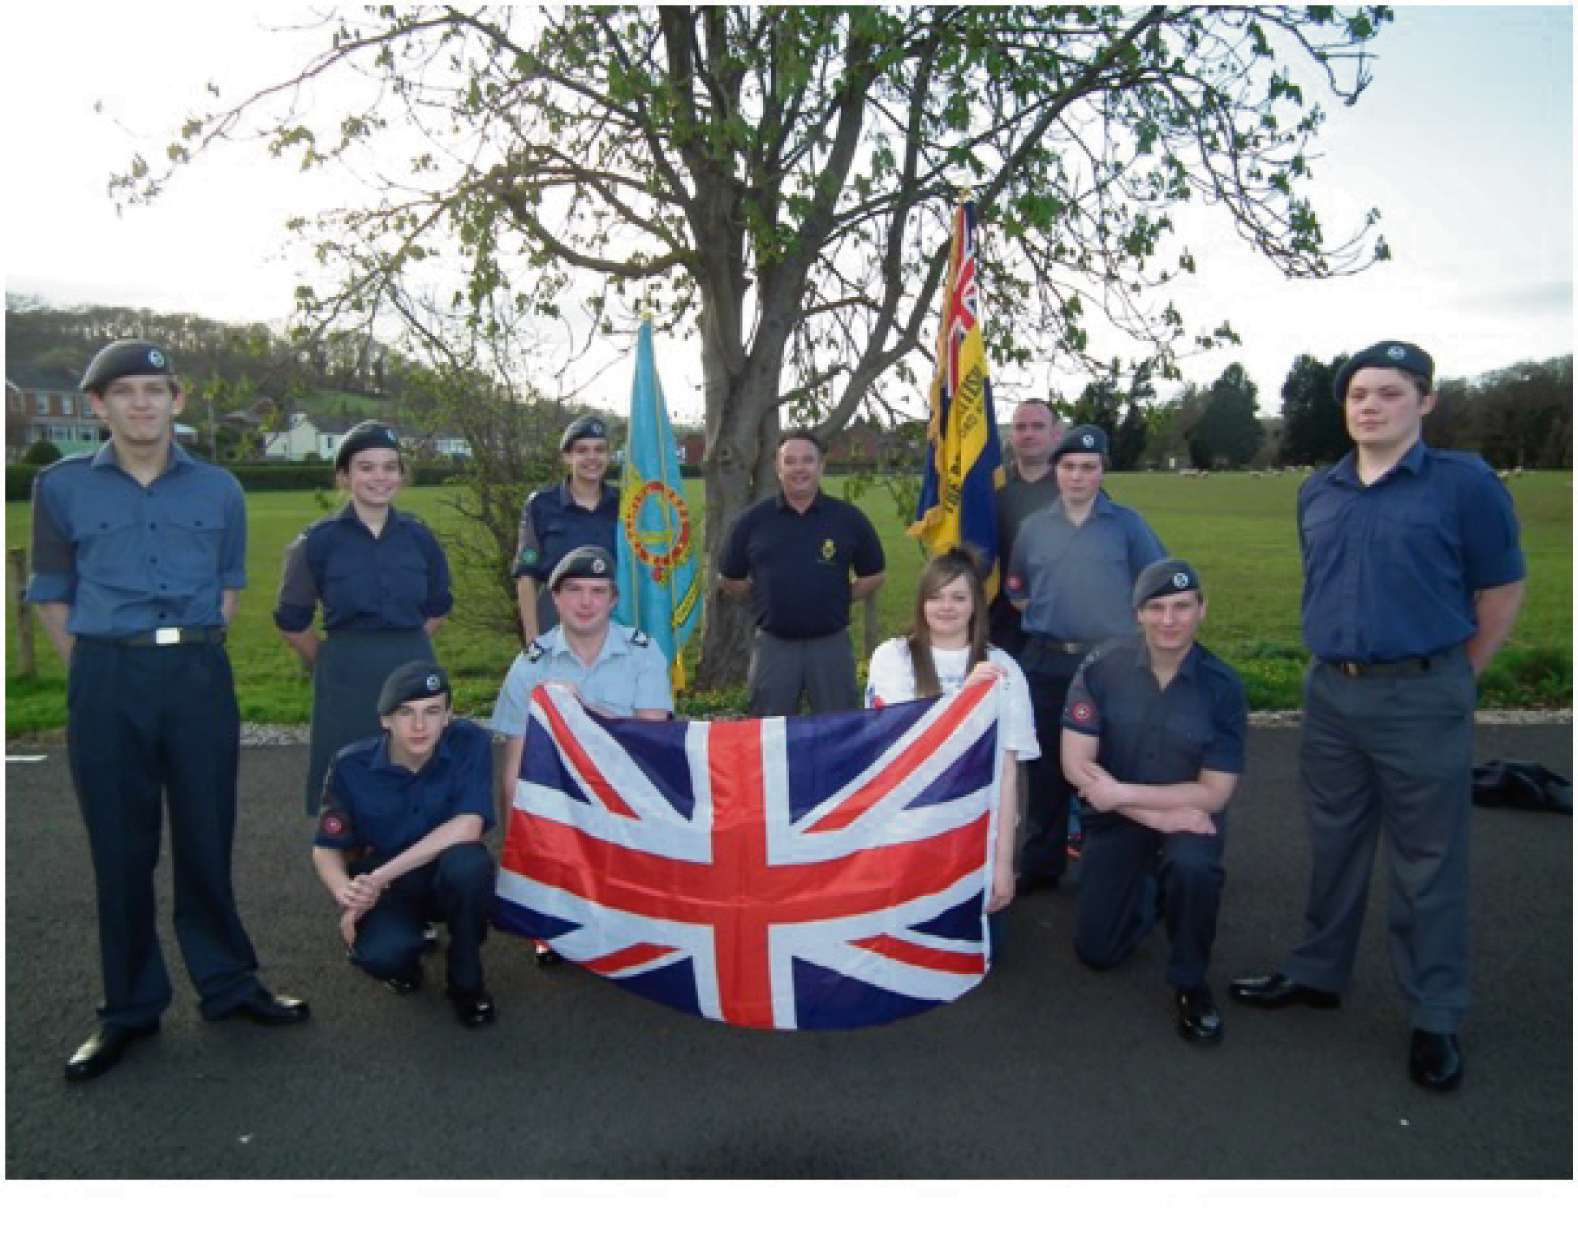 Members of the Royal British Legion in Hereford will take part in a 20 mile endurance walk with Armed Forces cadets.